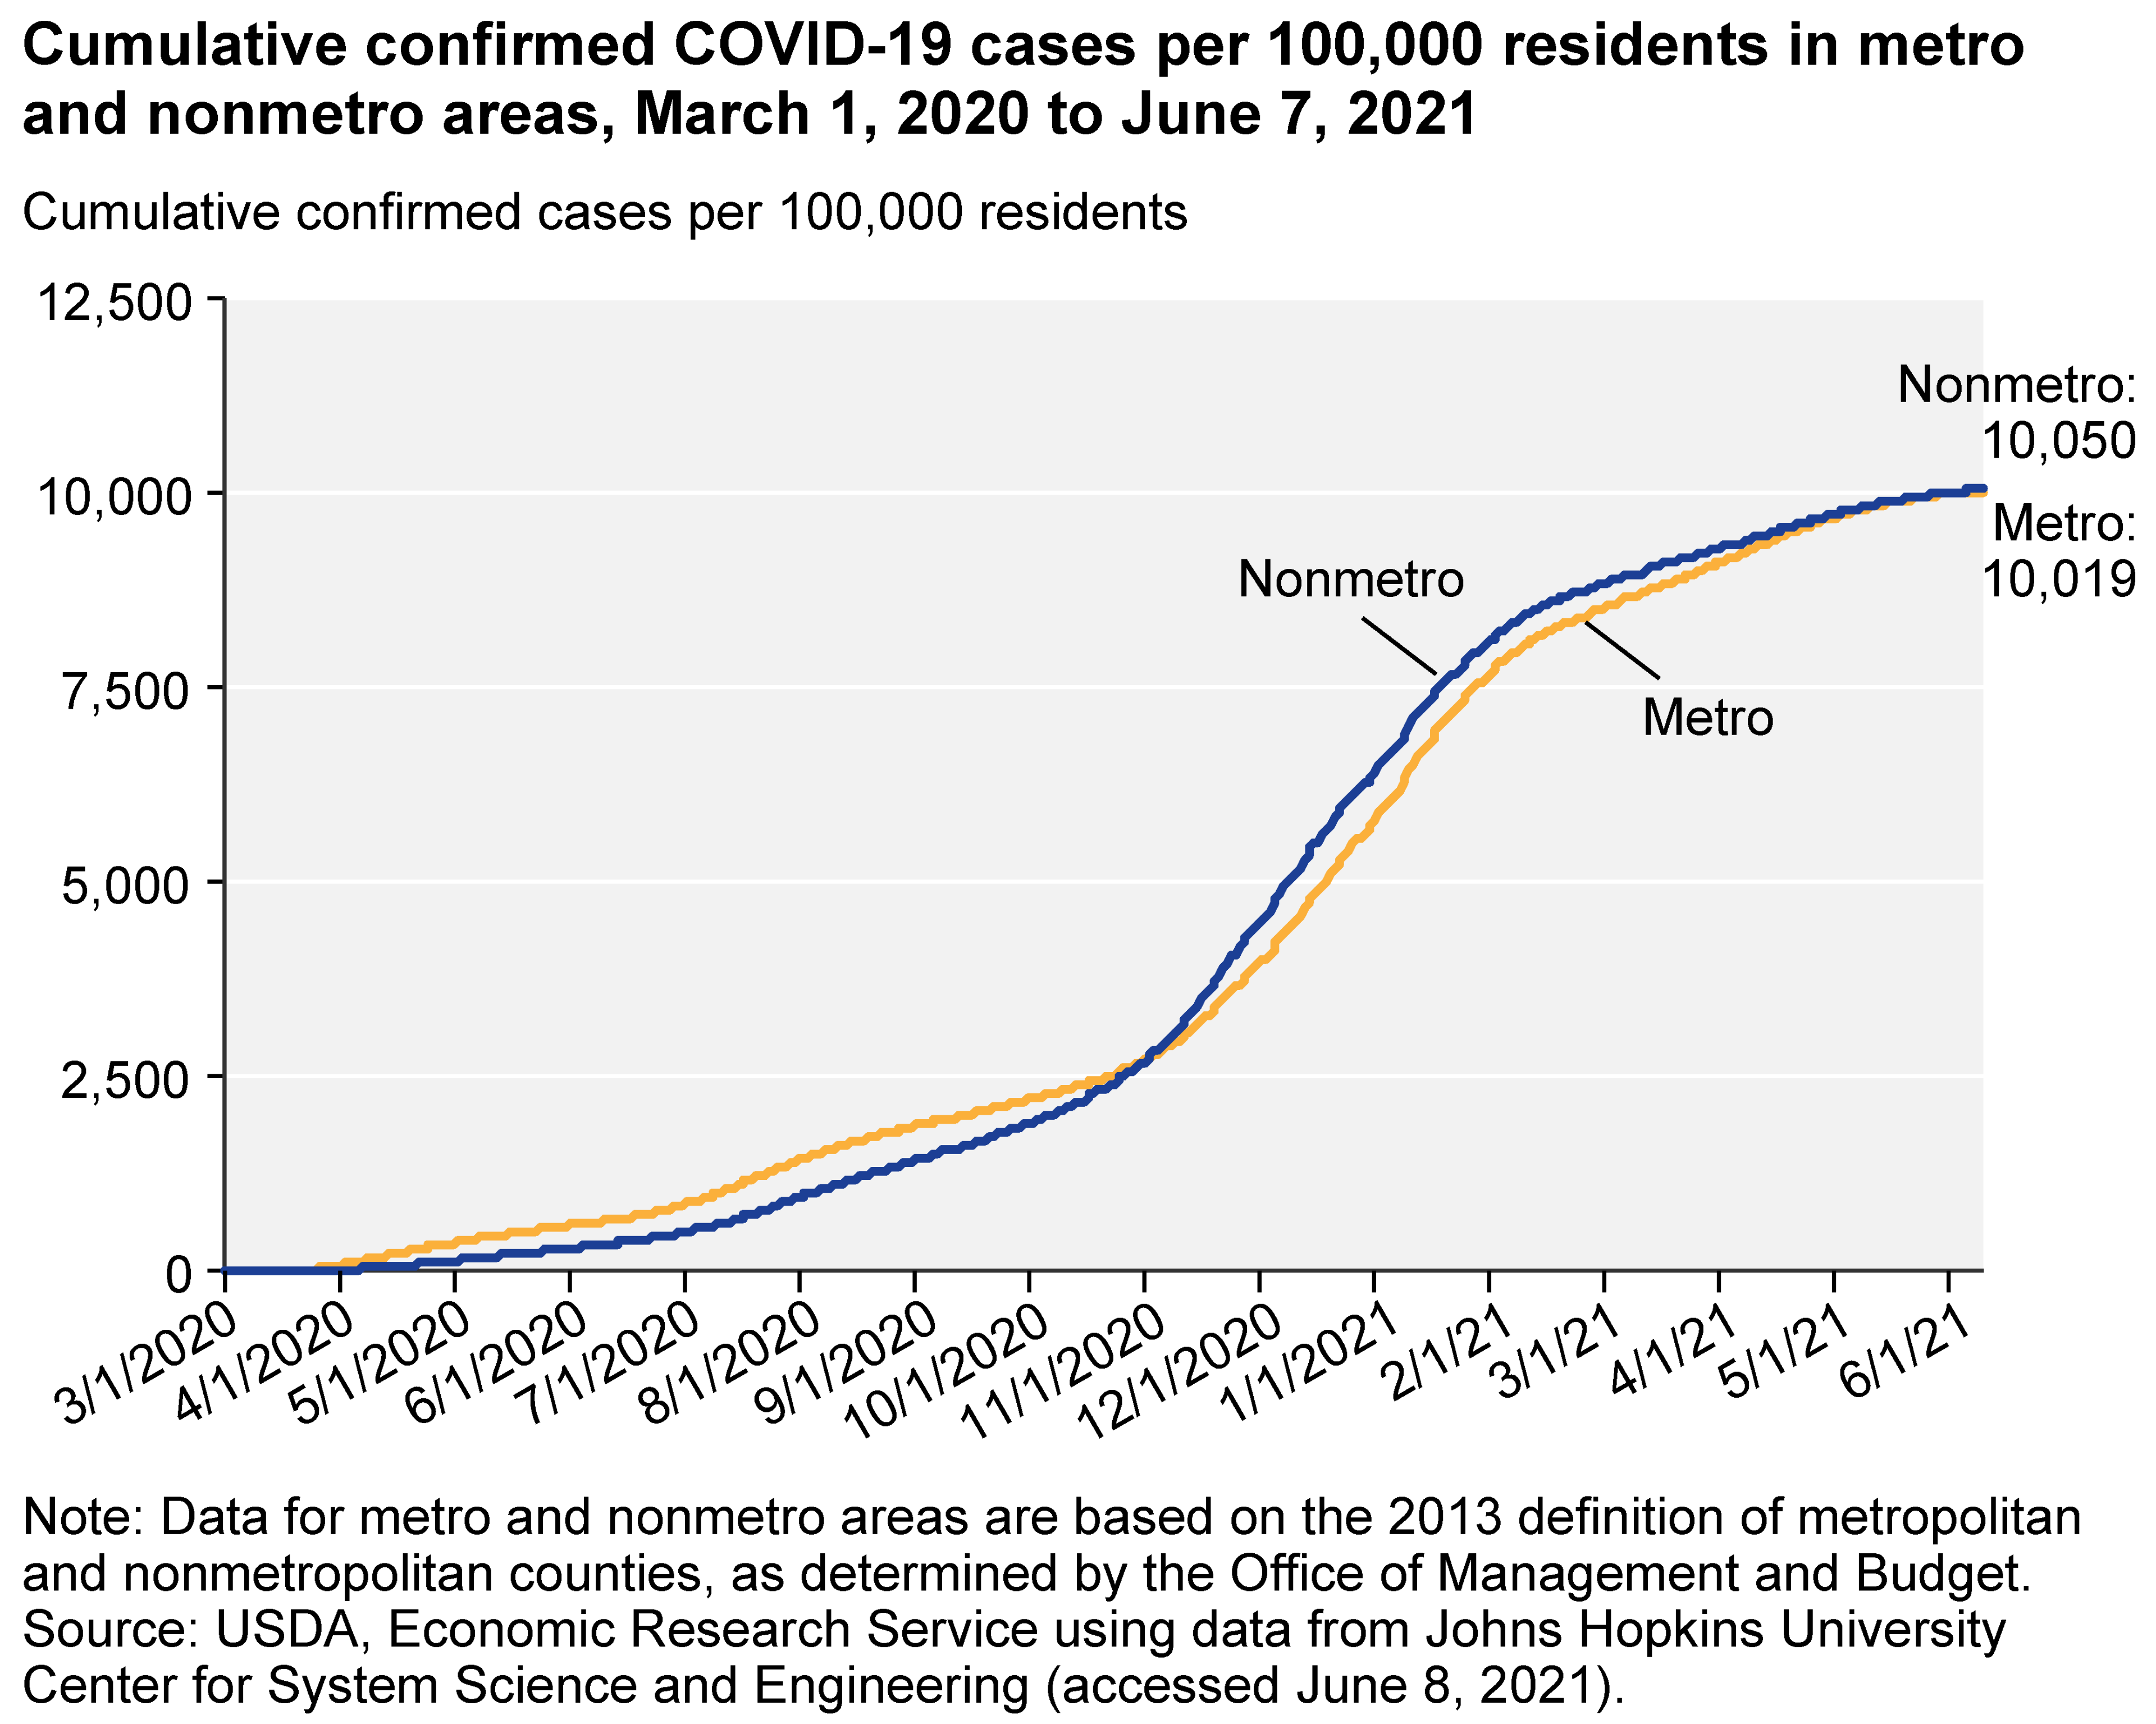 chart, cumulative covid-19 cases in metro and nonmetro areas. March 1, 2020 - June 7, 2021.